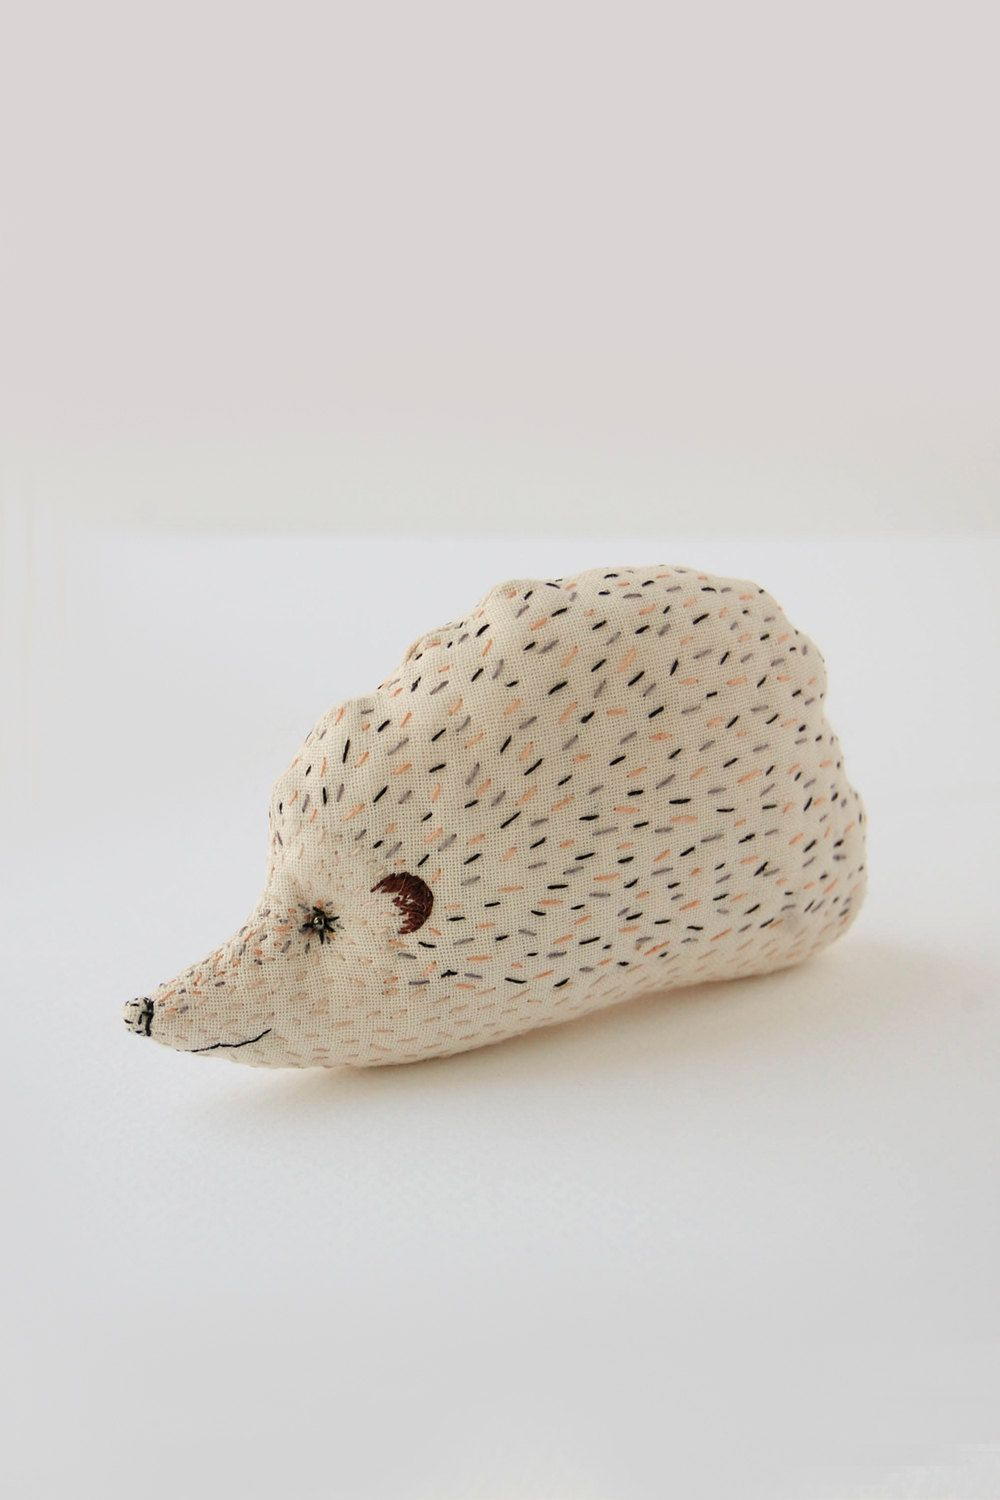 Hedgehog Stuffed Animal Plush Toy 3 12 Inch Stuffed Etsy In 2021 Small Birthday Gifts Baby Soft Toys Small Stuffed Animals [ 1500 x 1000 Pixel ]